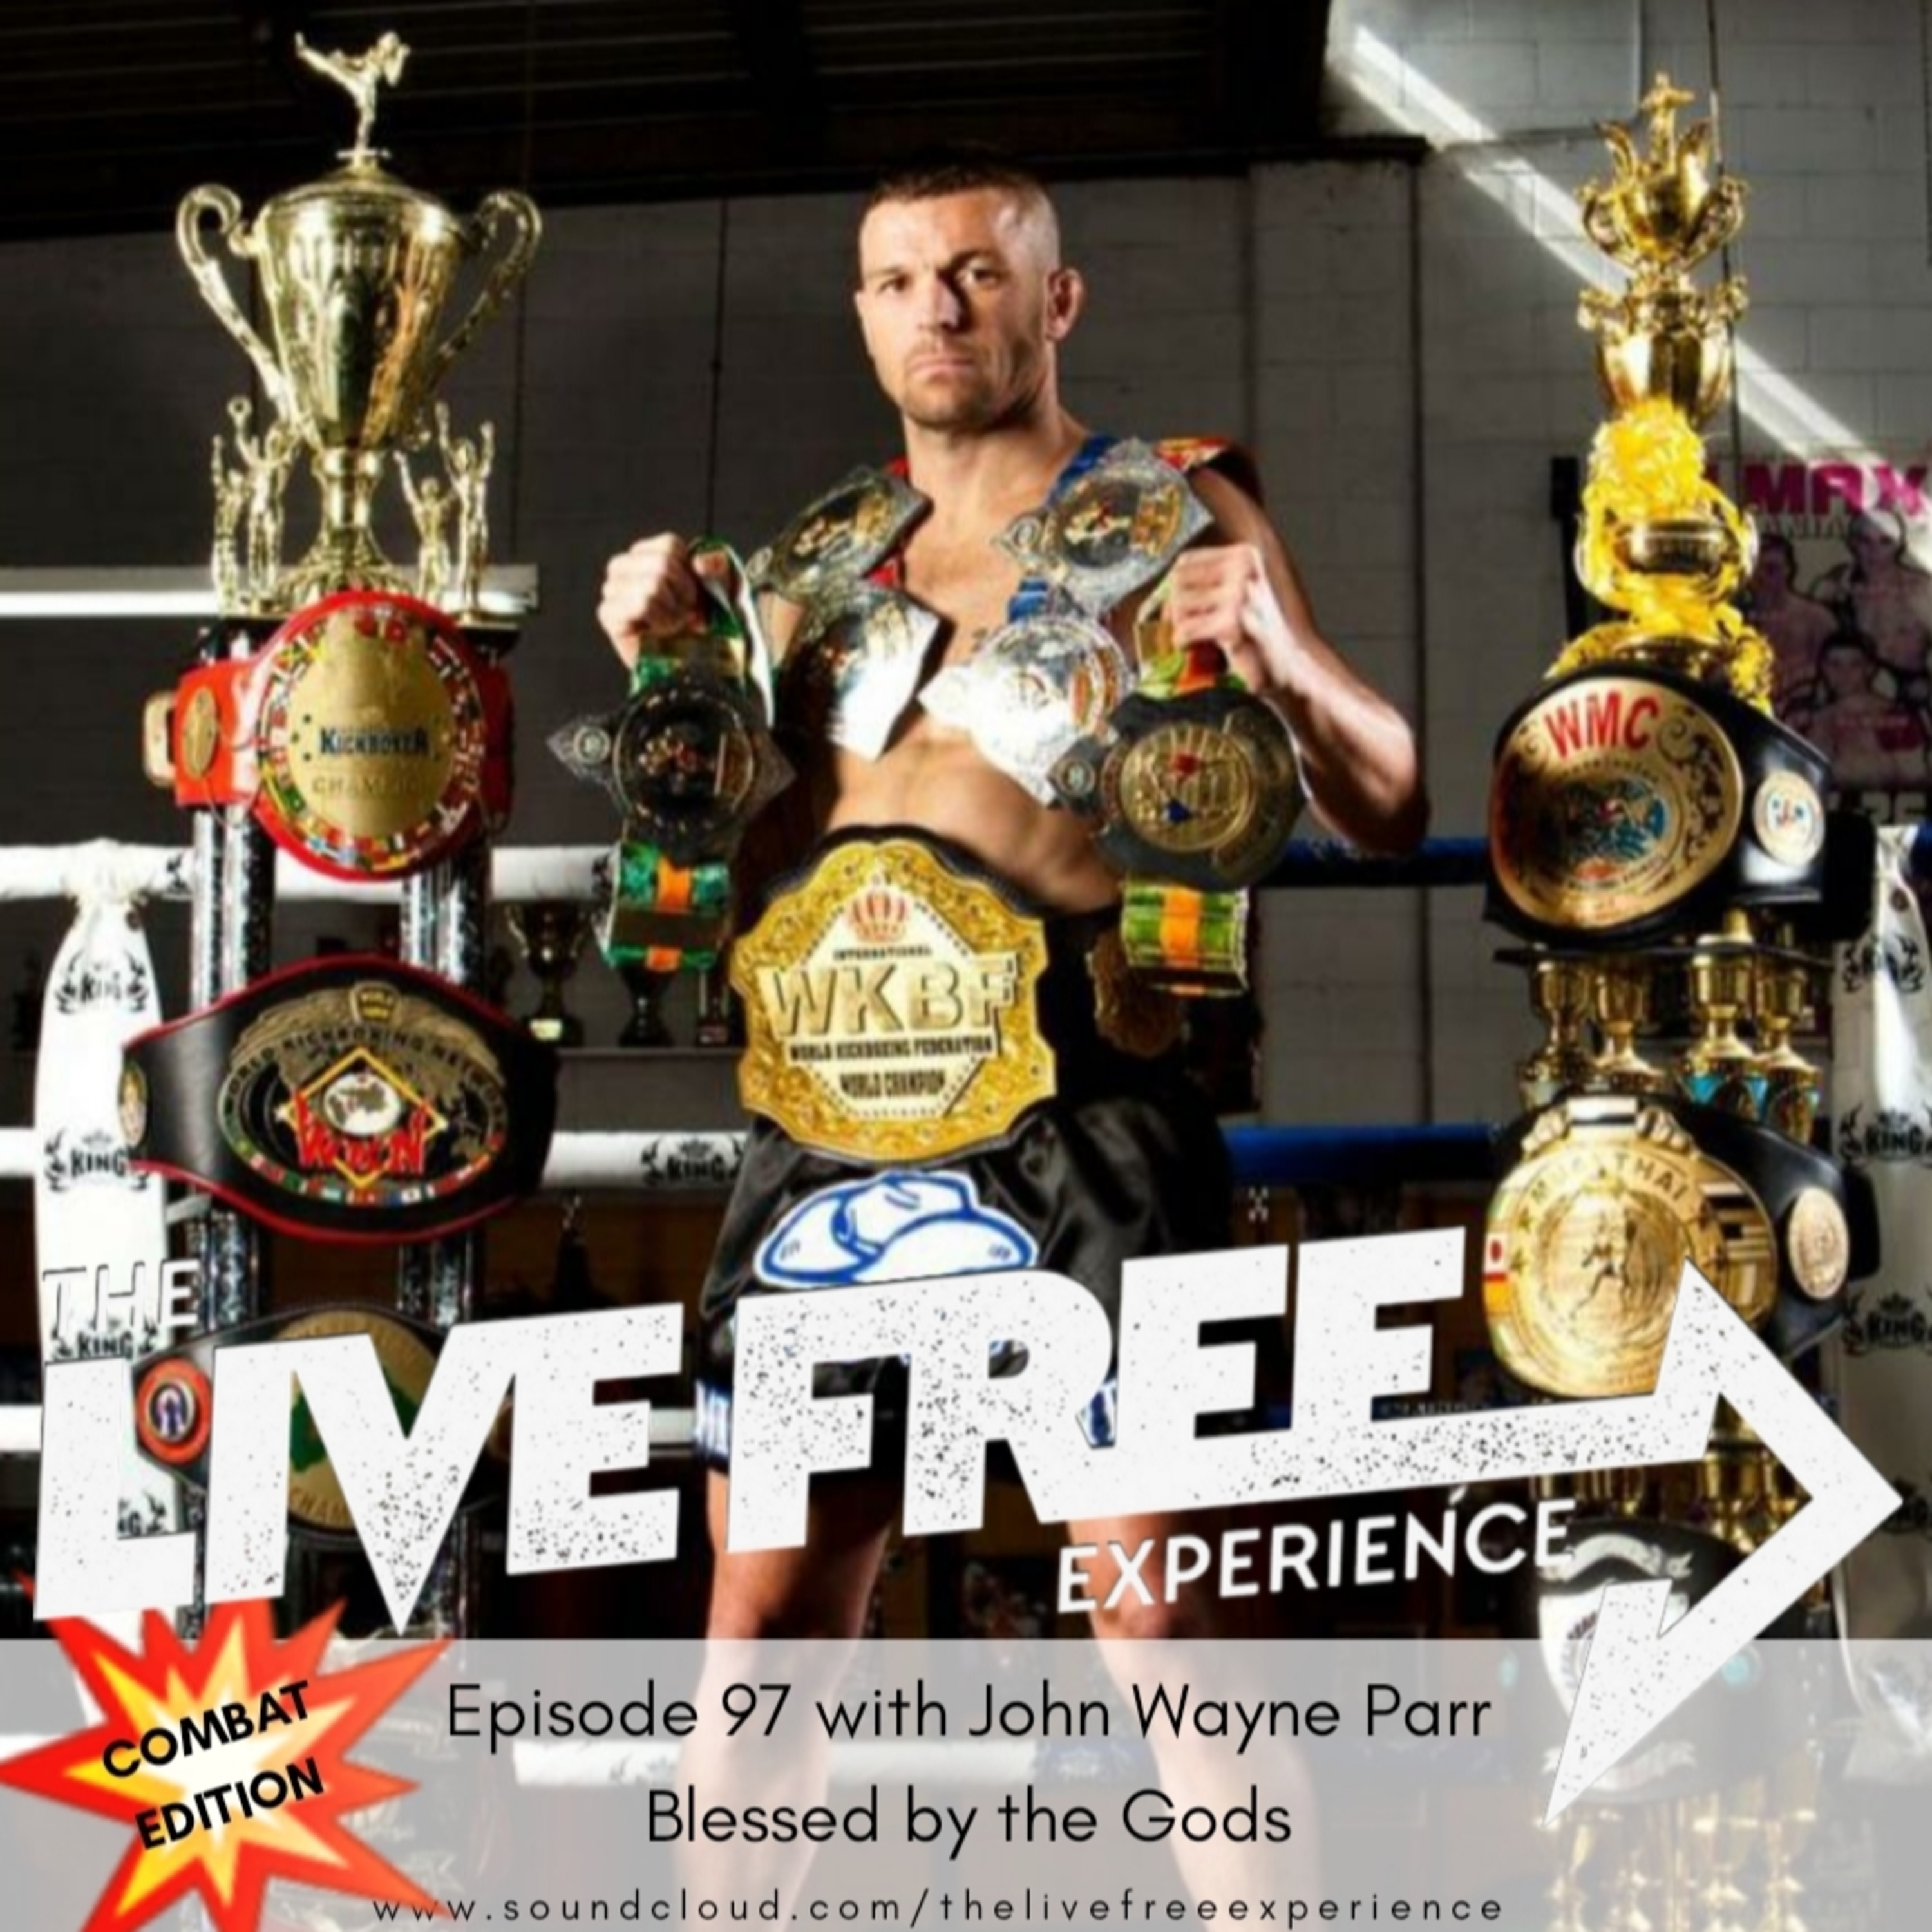 97: John Wayne Parr - Blessed by the Gods